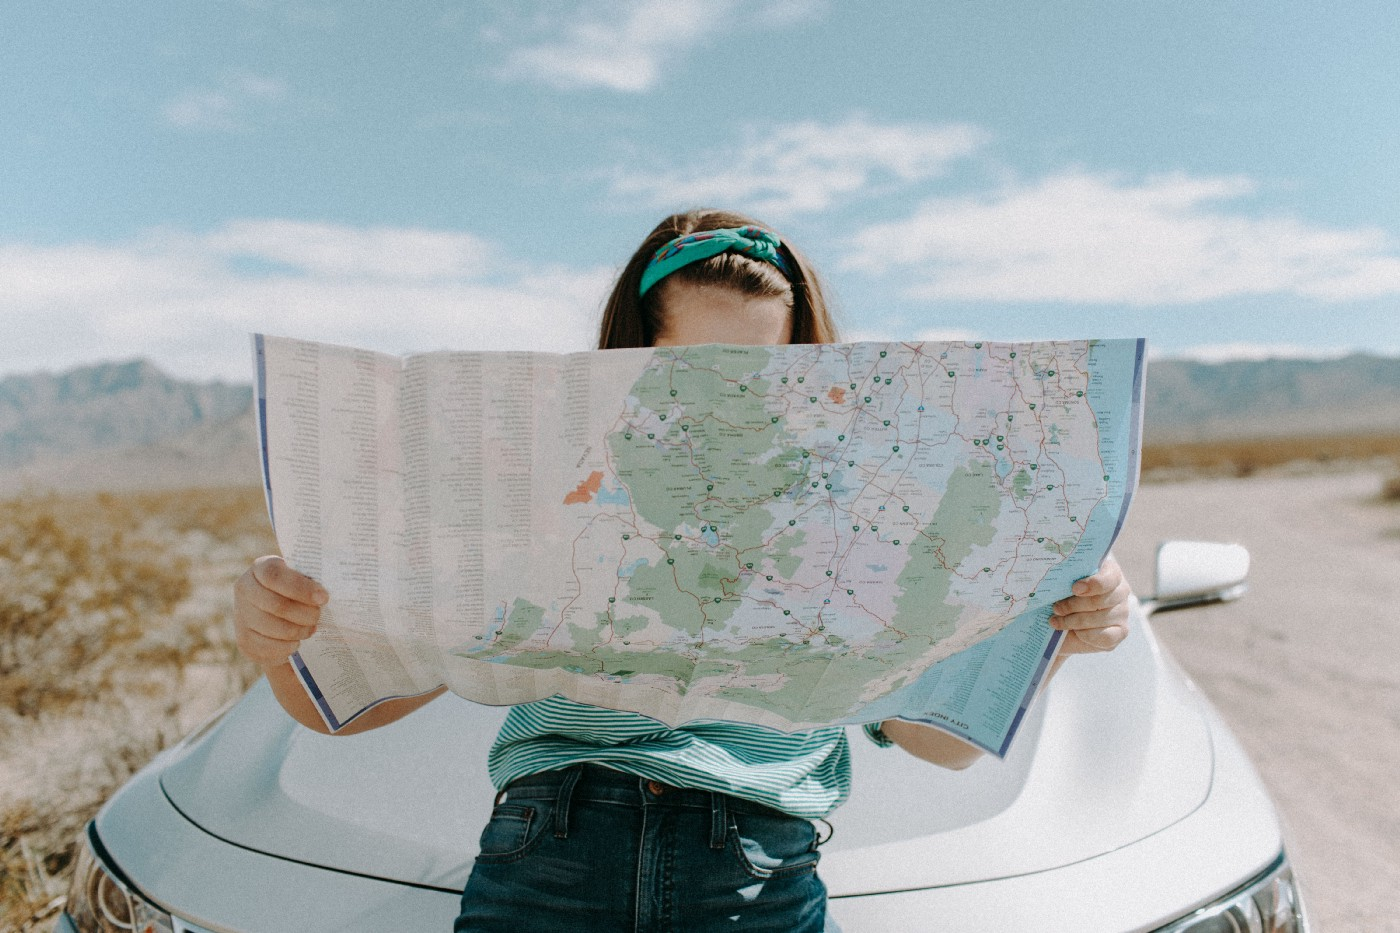 A woman in blue looking at a large map outdoors in front of a white car